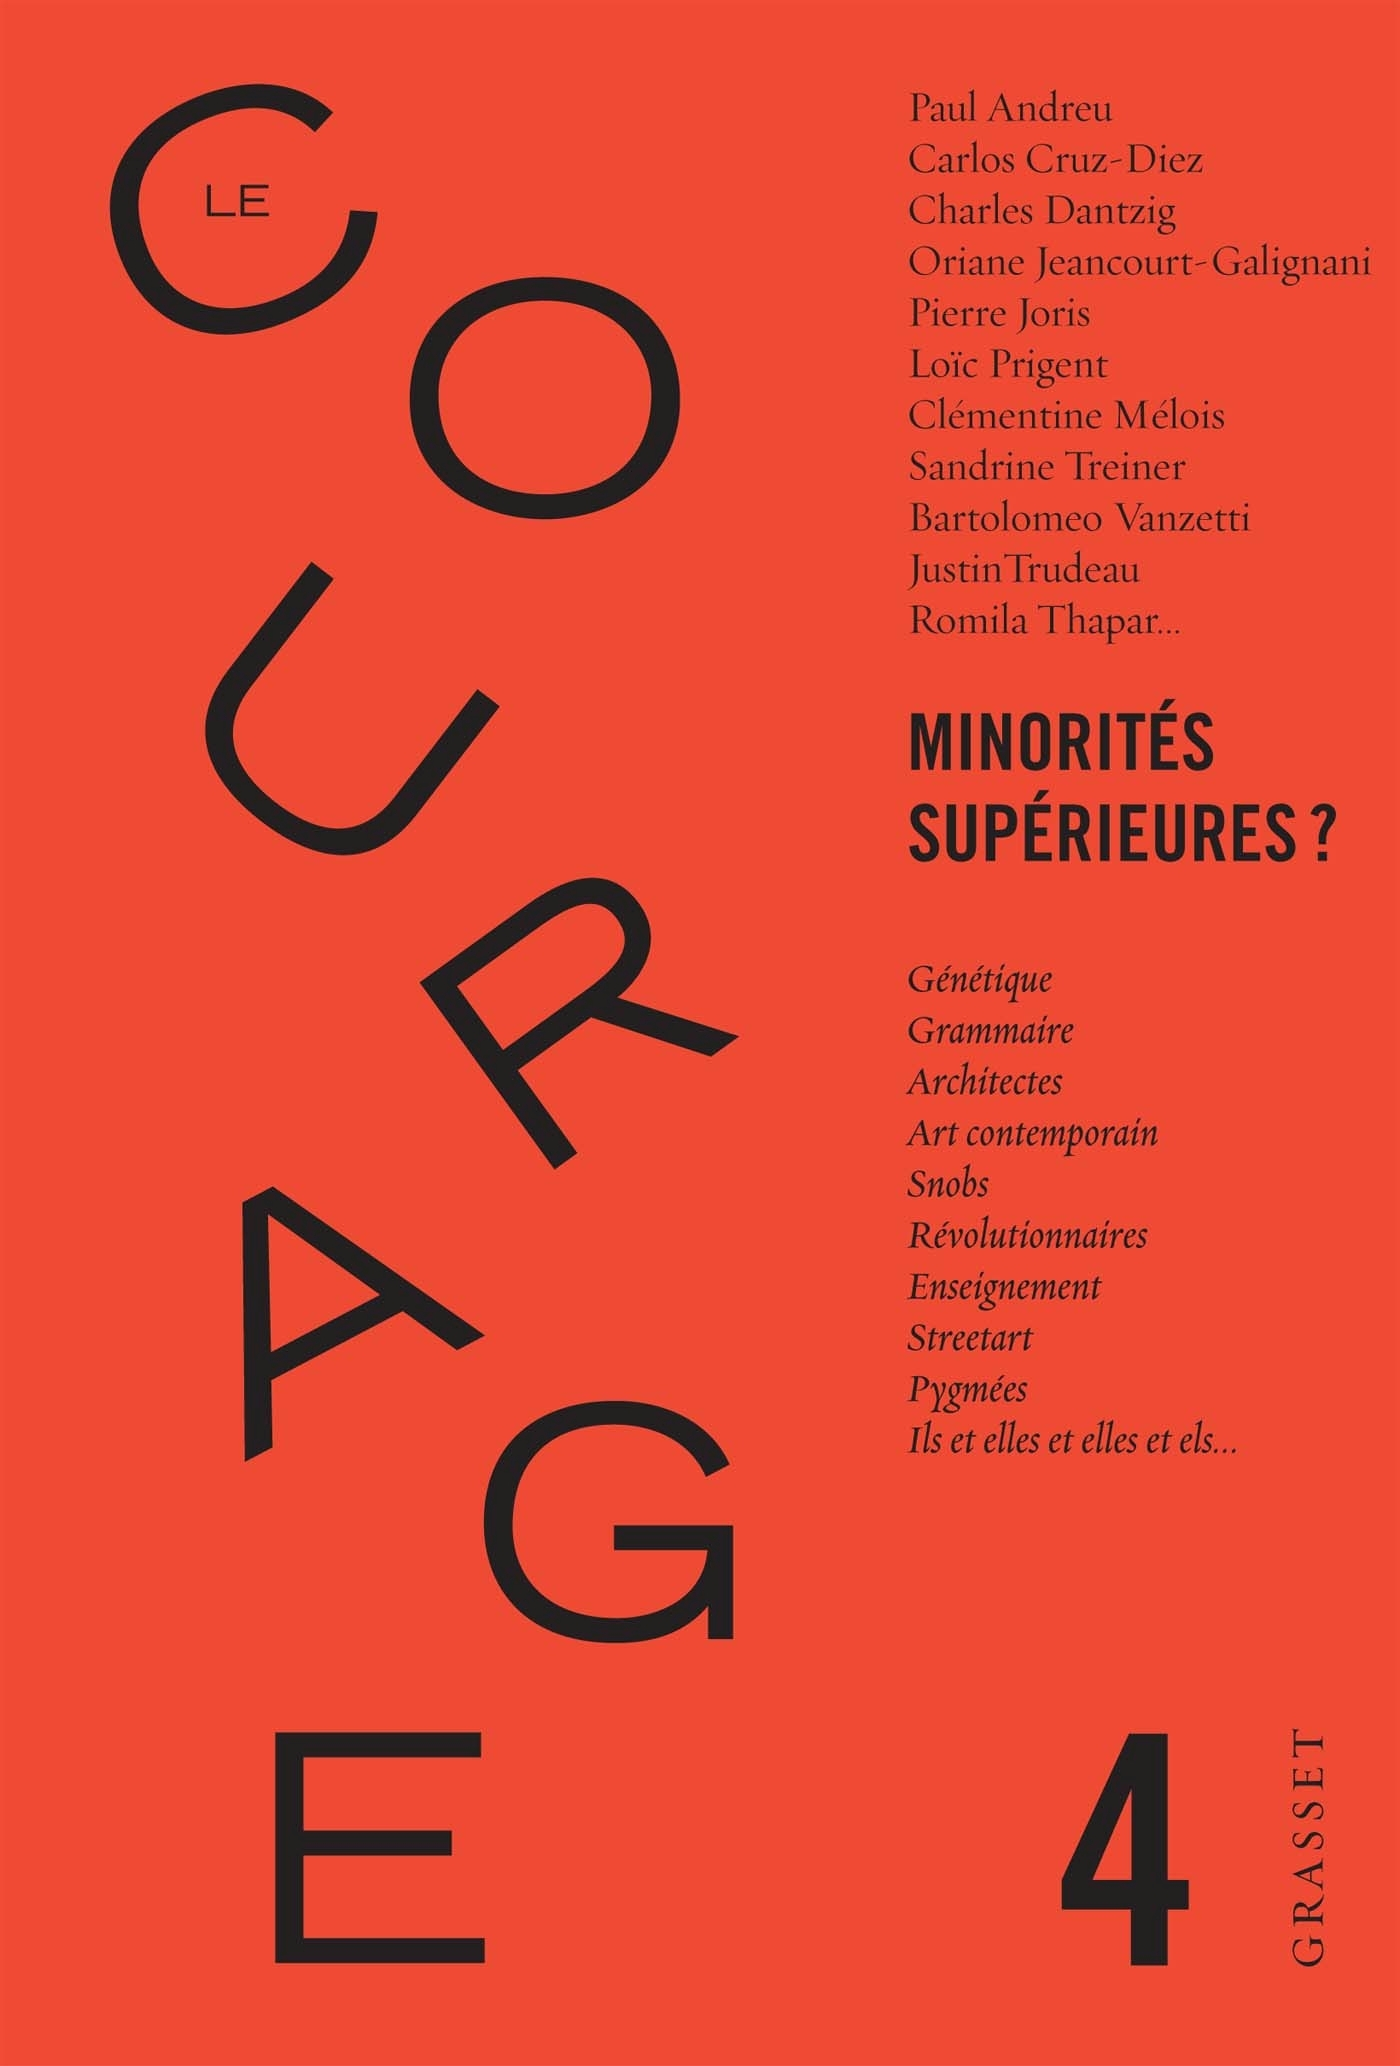 LE COURAGE N 4 / MINORITES SUPERIEURES ?